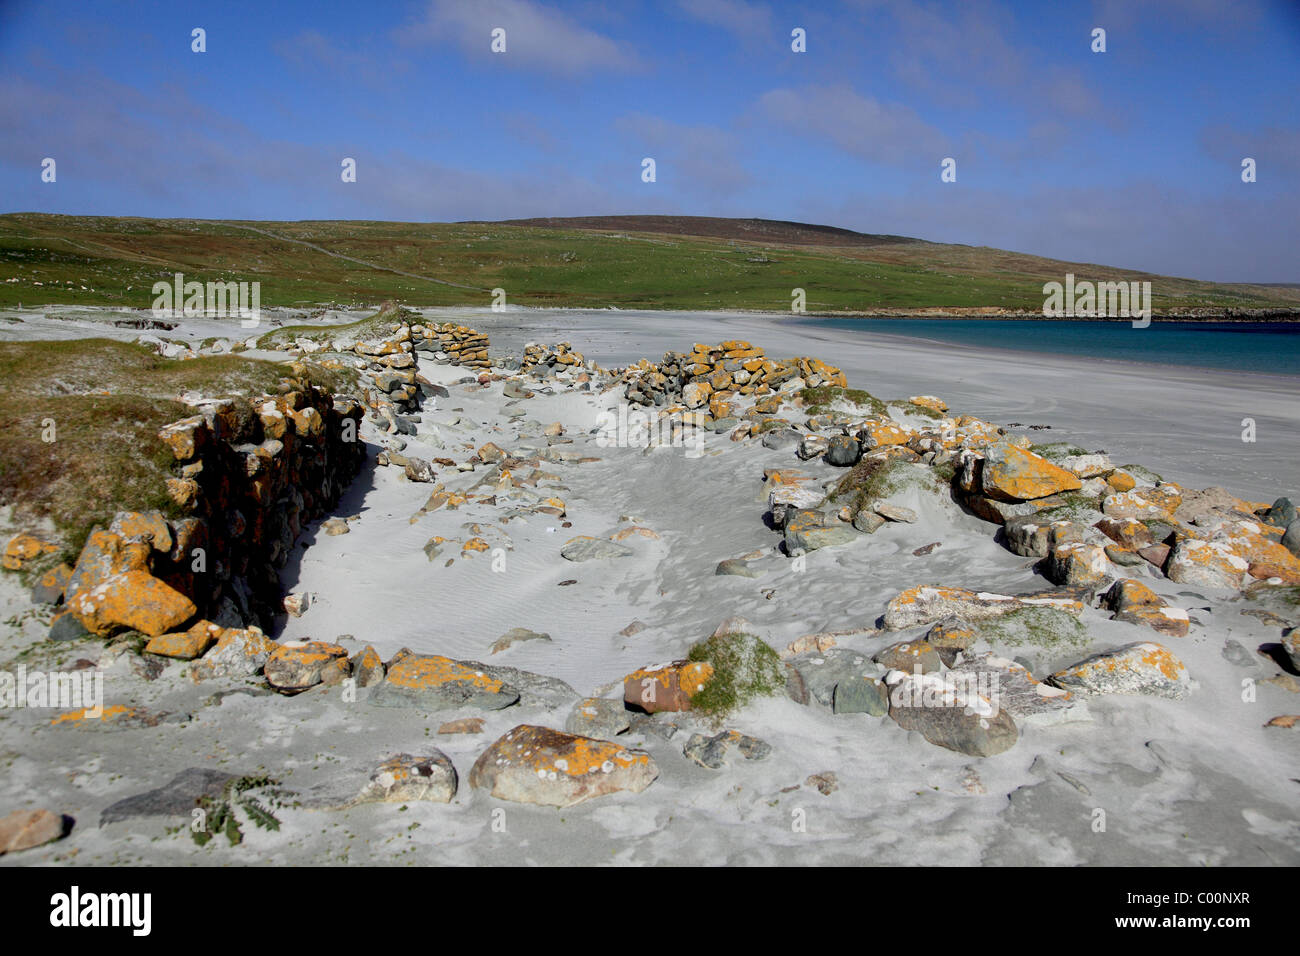 Norse, Viking longhouse excavated at Easting, Sandwick Bay, Unst, Shetland - Stock Image